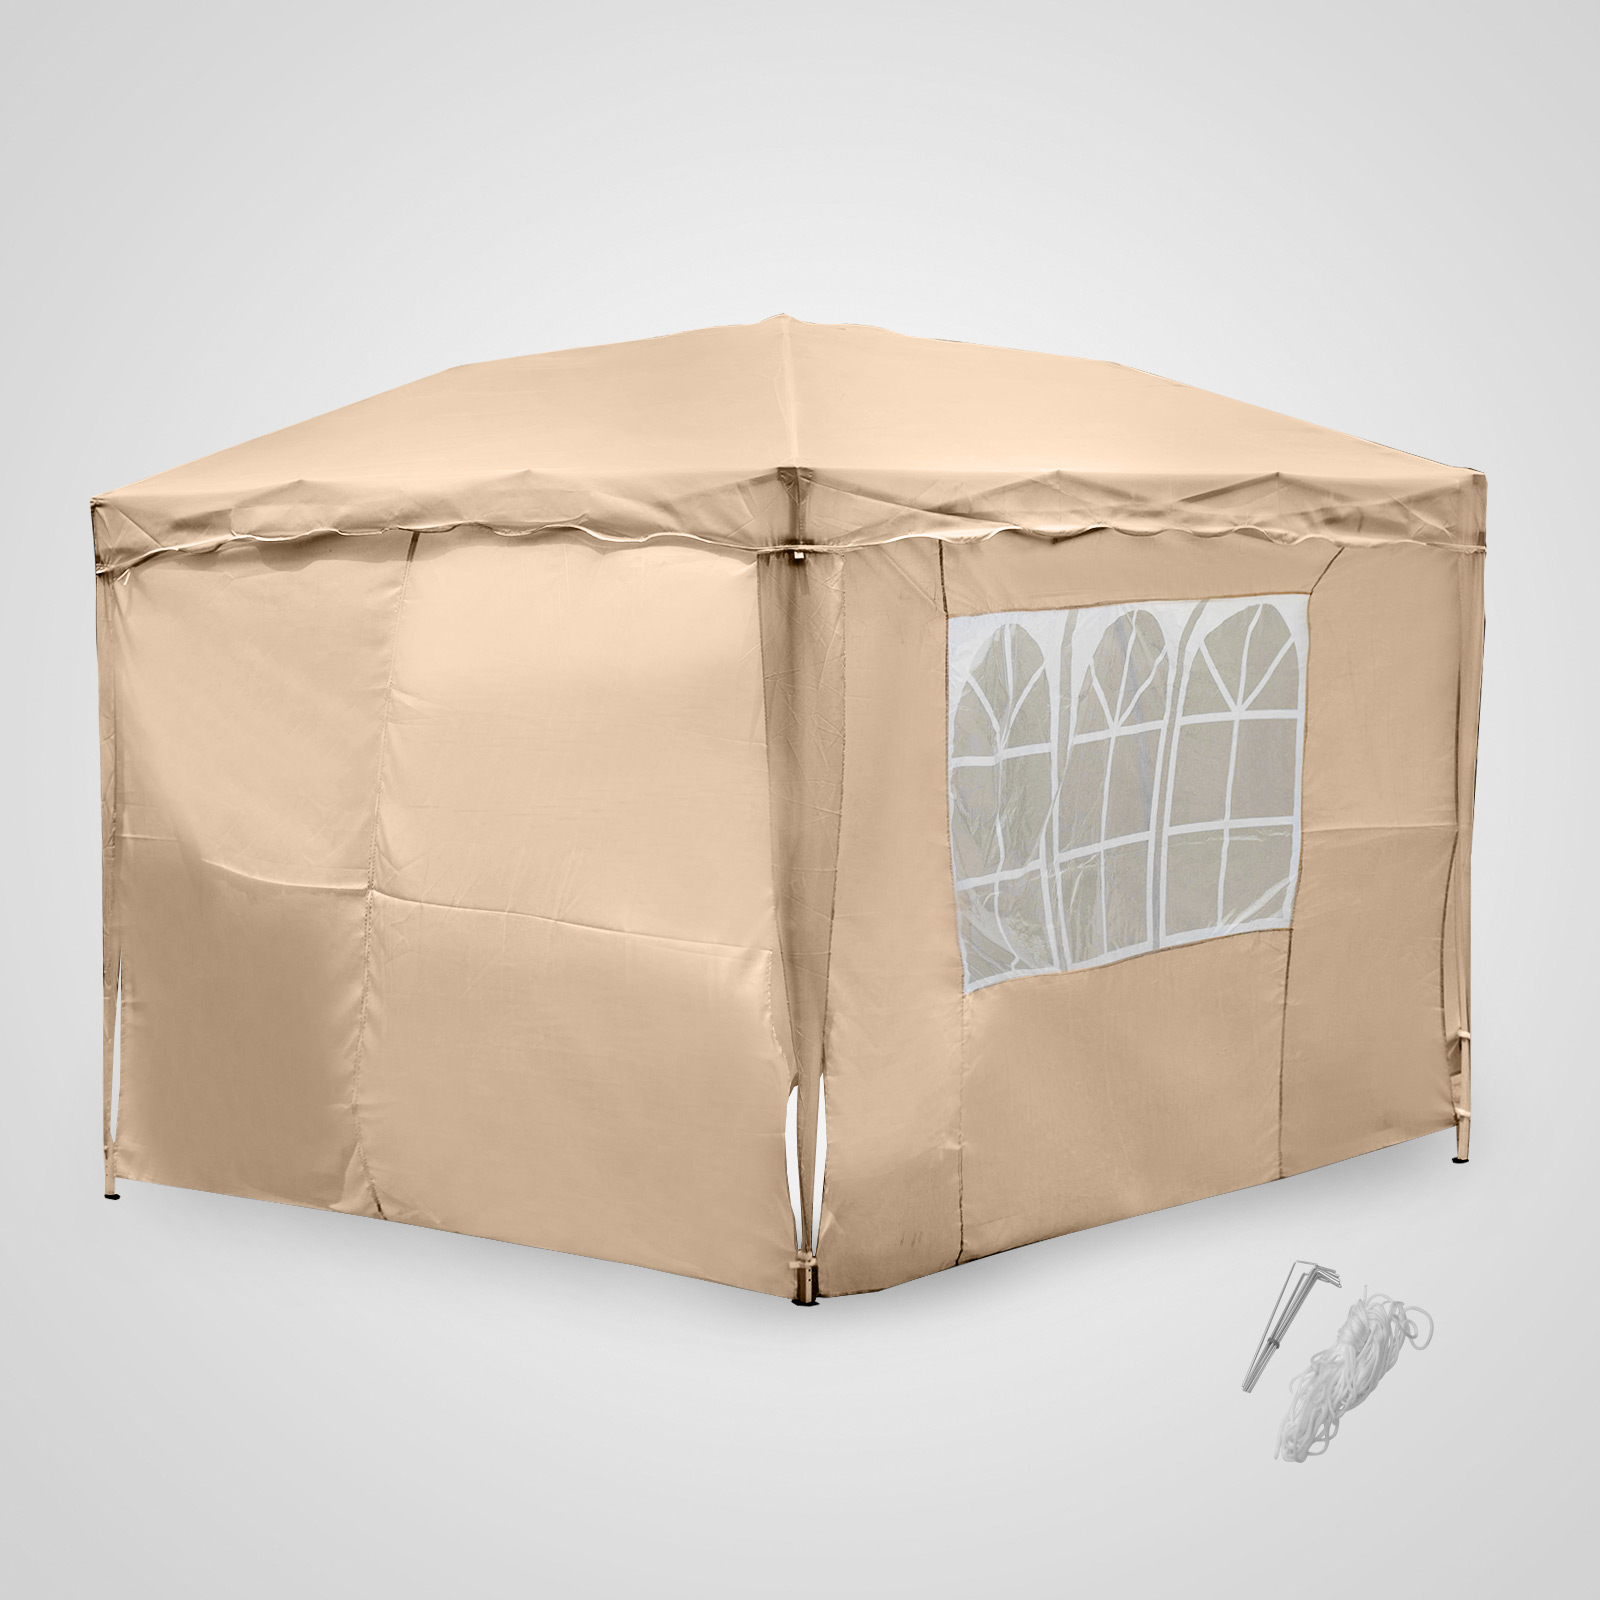 Carpa plegable 3x3m tipo gazebo pabell n cenador paneles for Gazebo plegable easy